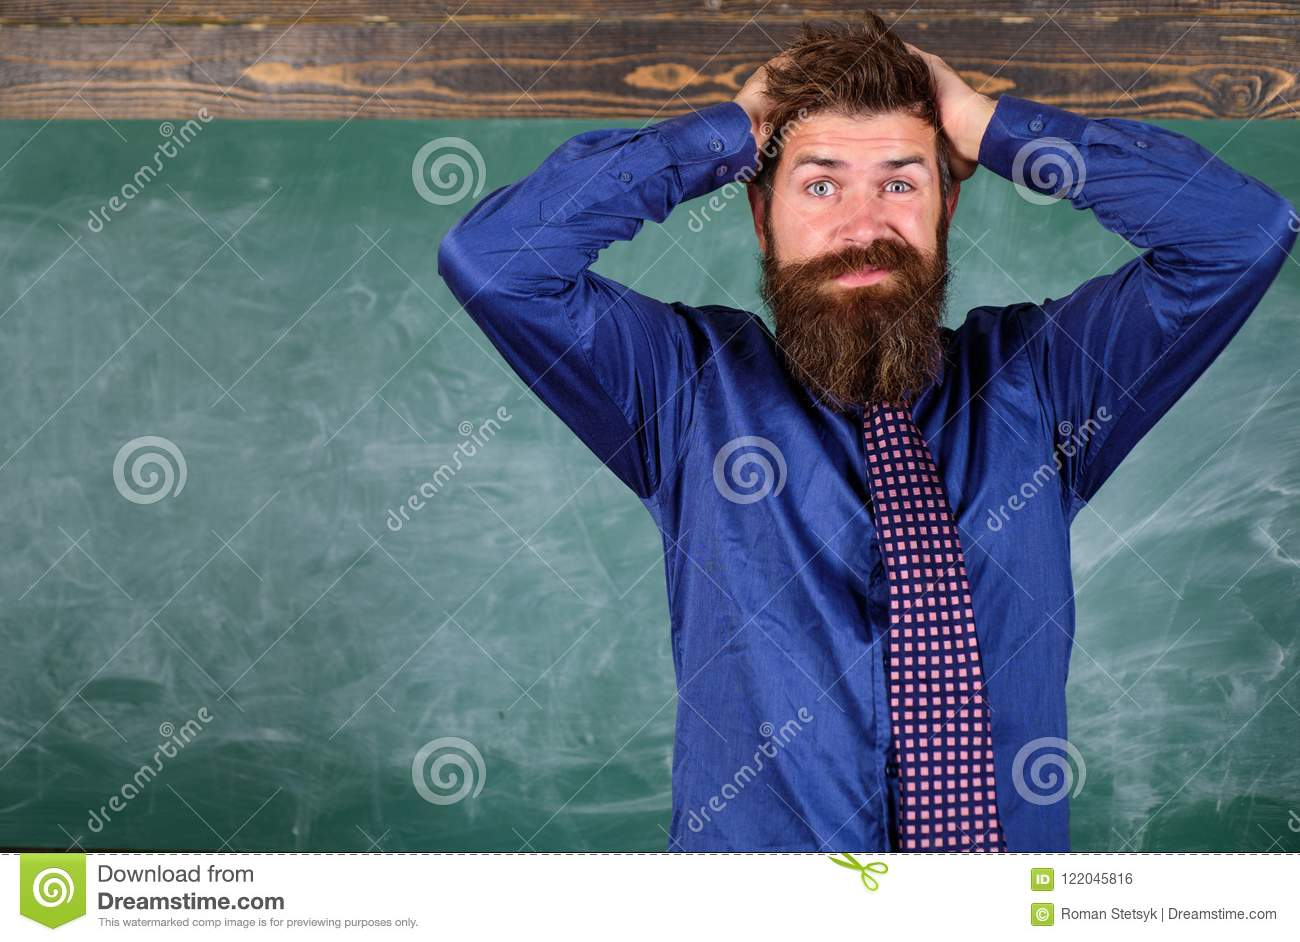 Teacher etiquette tips modern education professional. Man bearded teacher or educator hold head chalkboard background